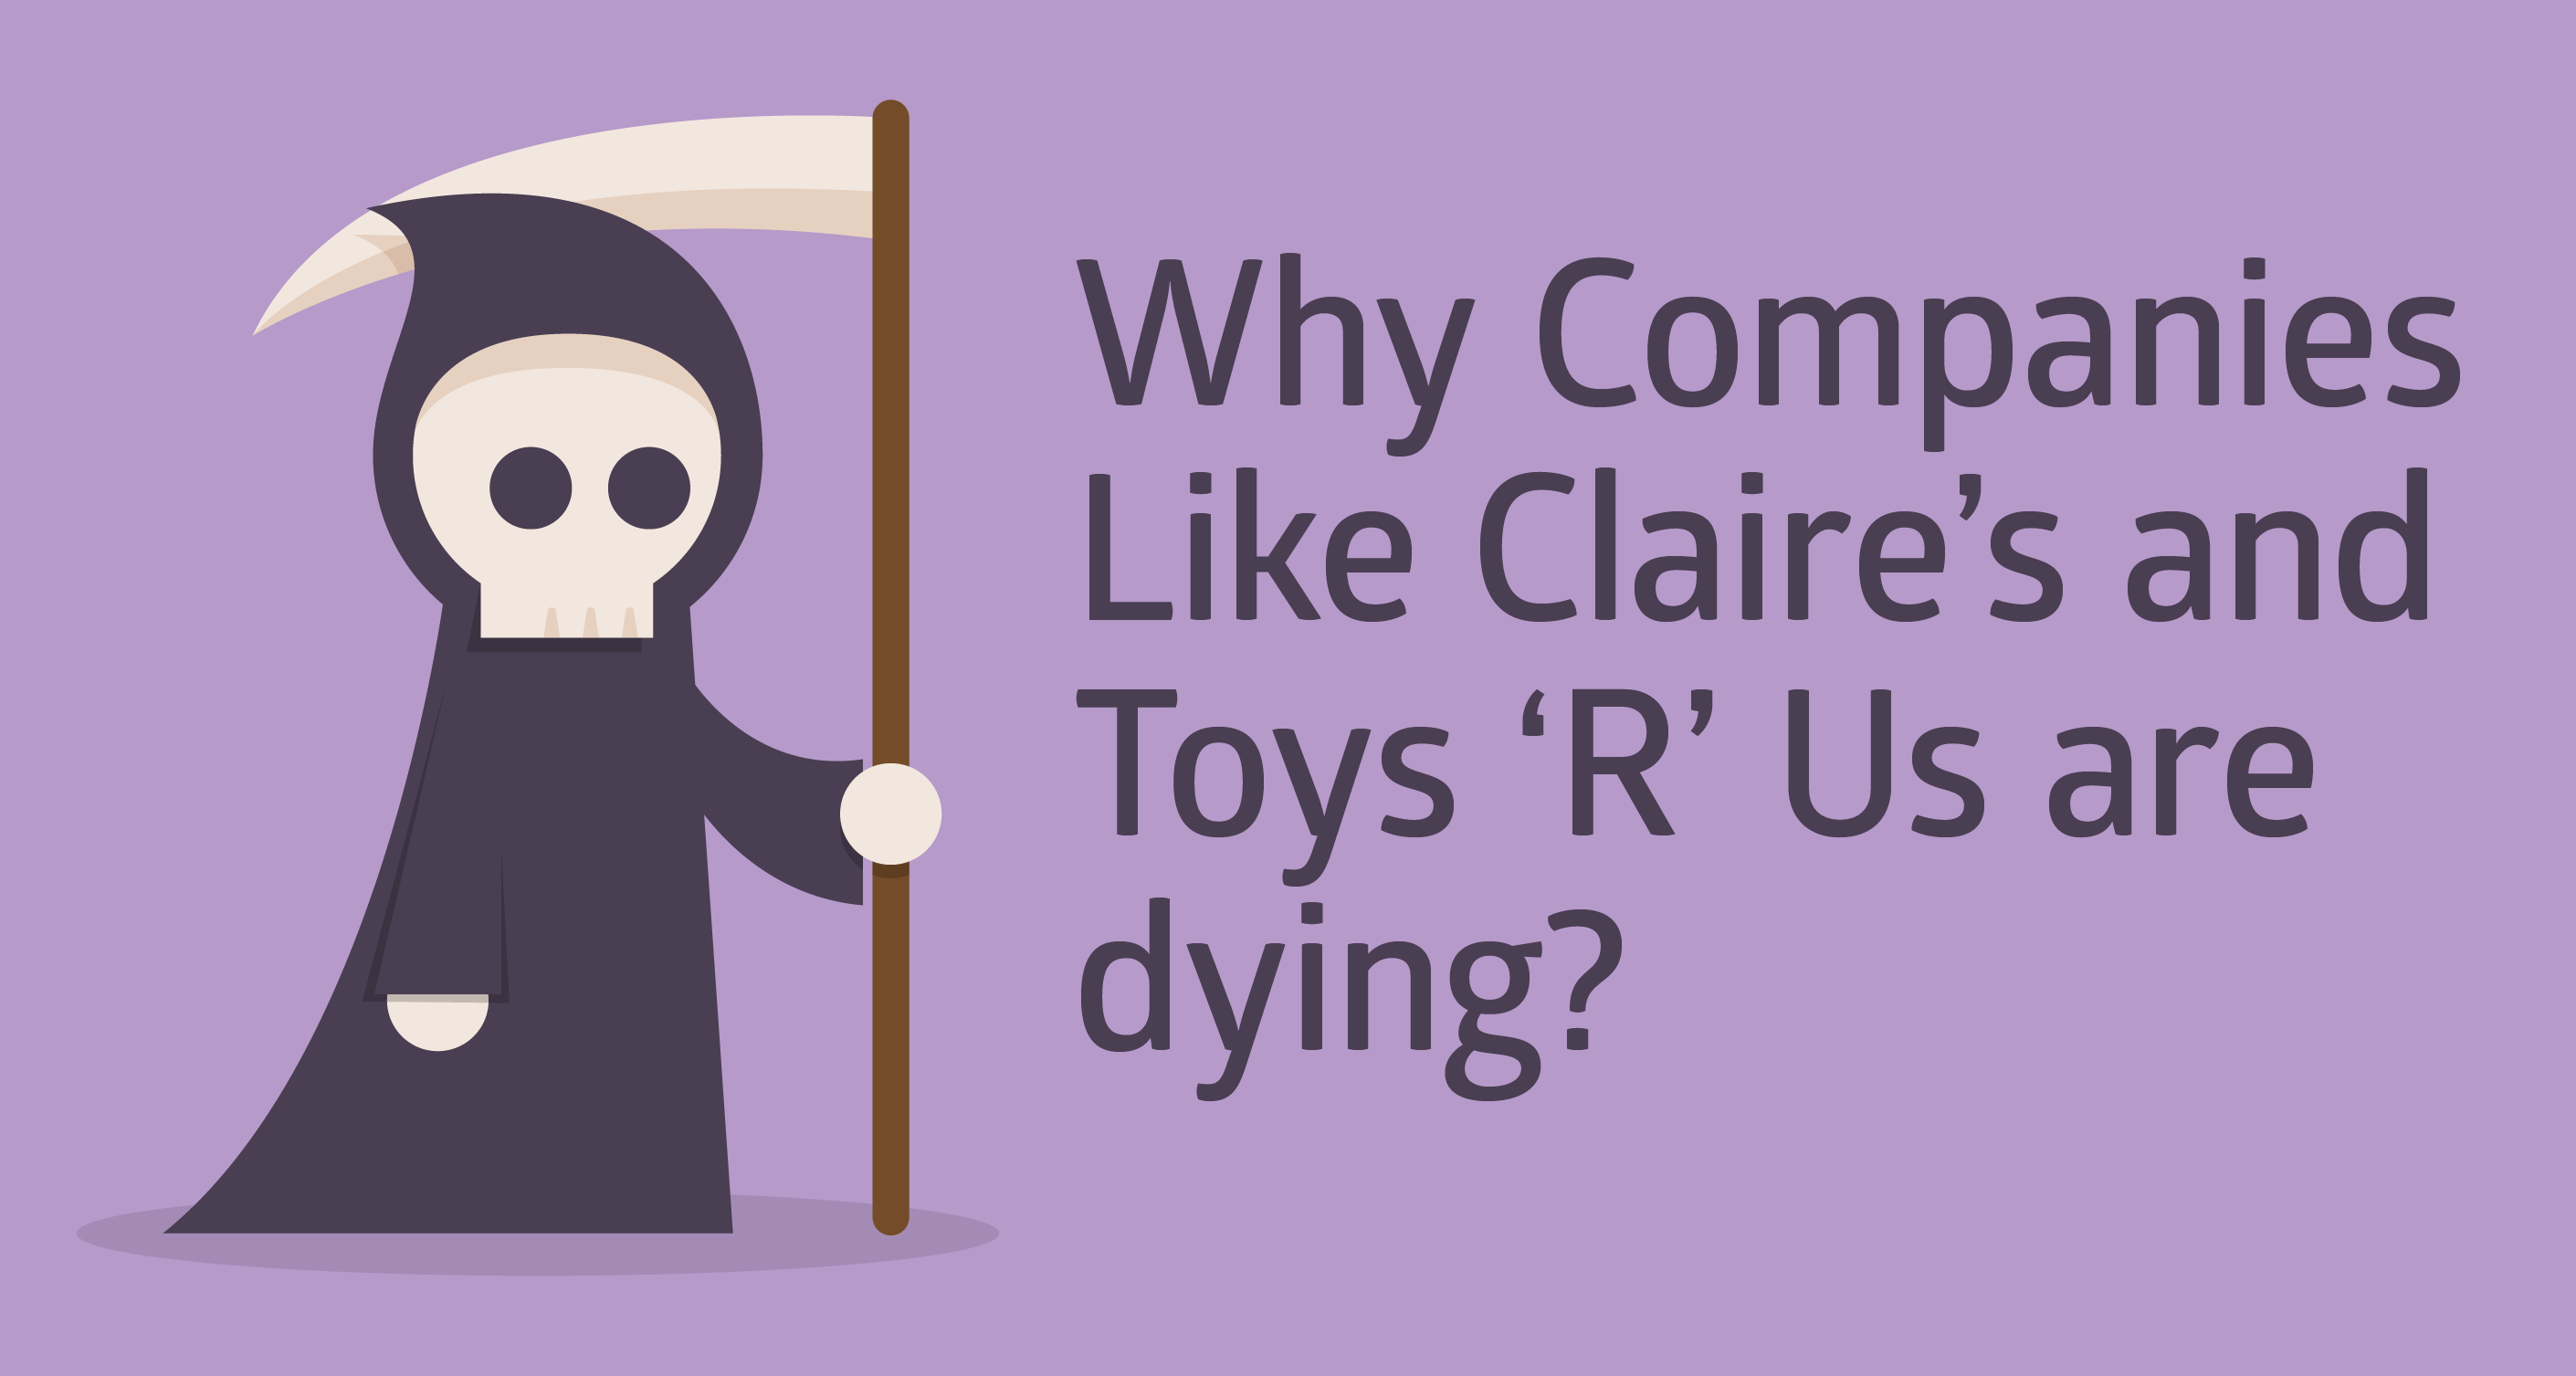 Why Companies Like Claire's and Toys 'R' Us Are Dying?